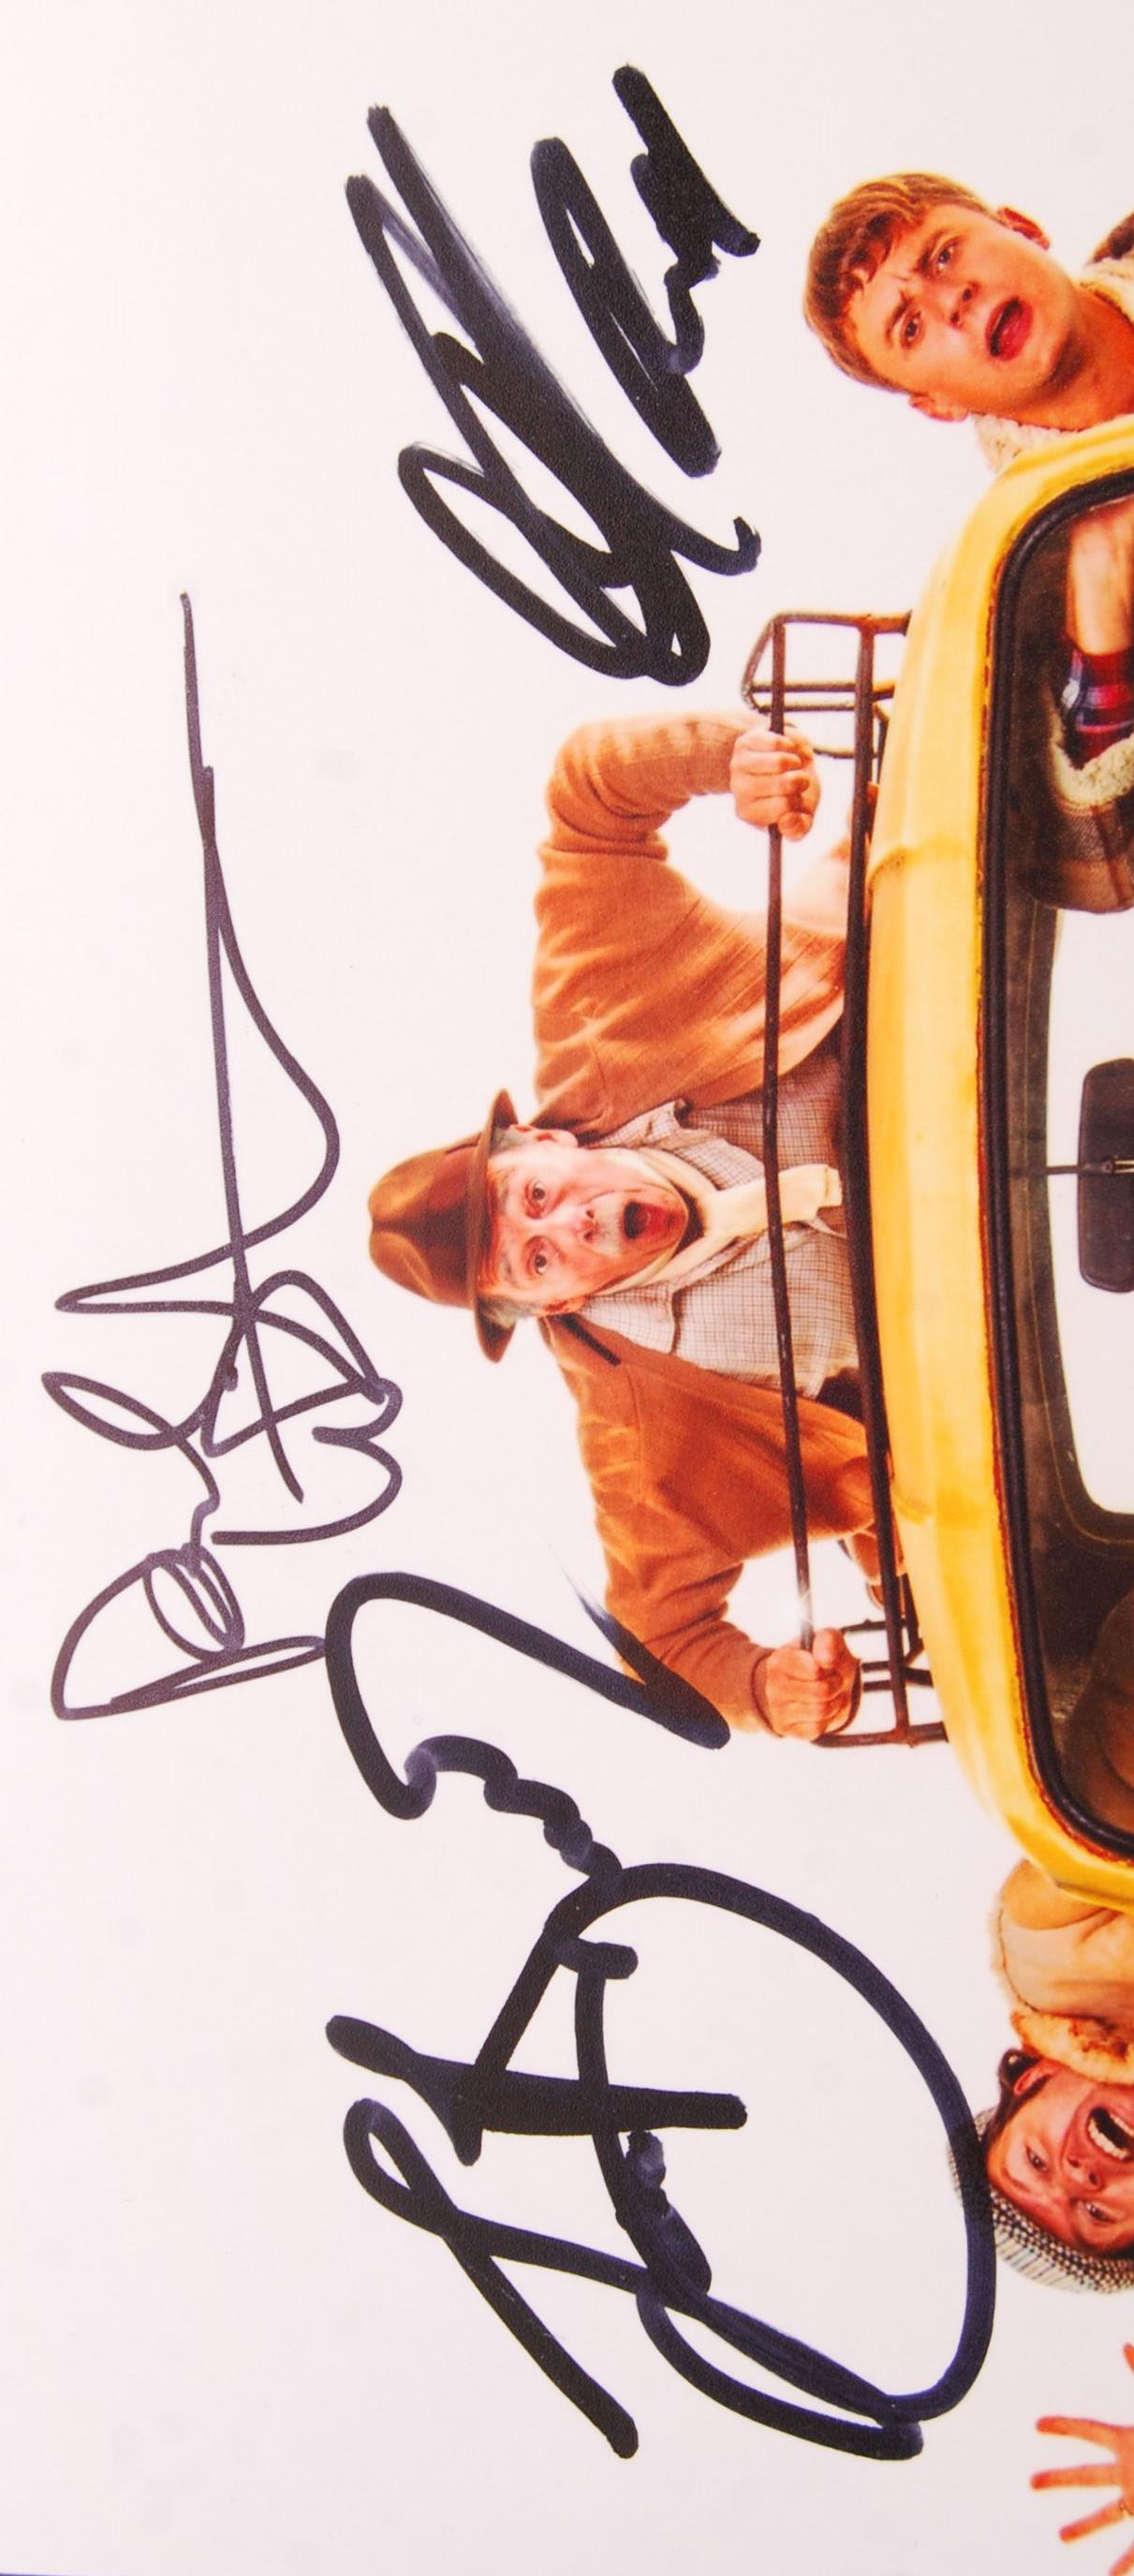 Lot 64 - ONLY FOOLS & HORSES THE MUSICAL - CAST SIGNED PHOT